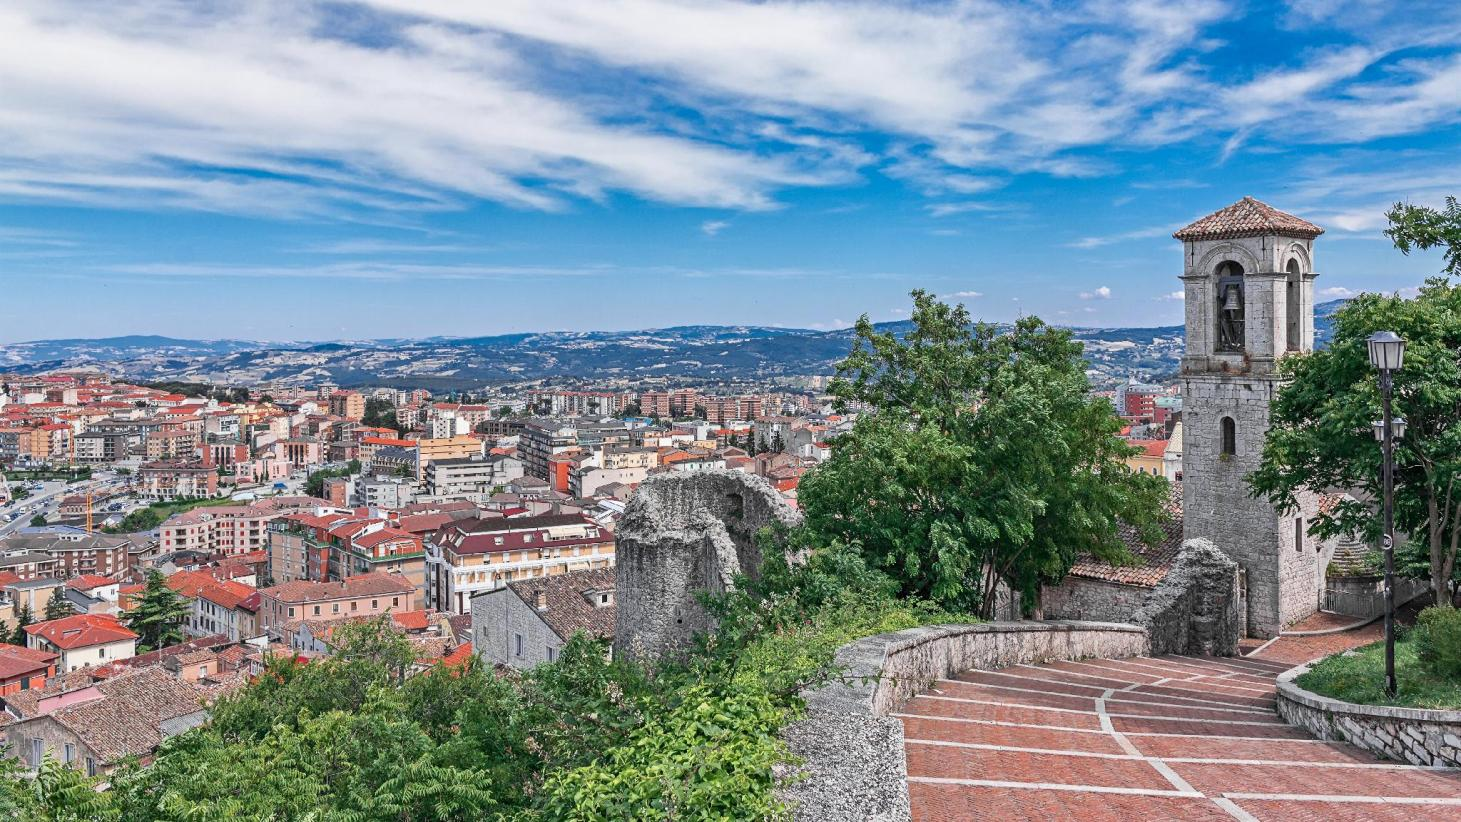 Deals in Campobasso, Italy - Save up to 50% with Travel